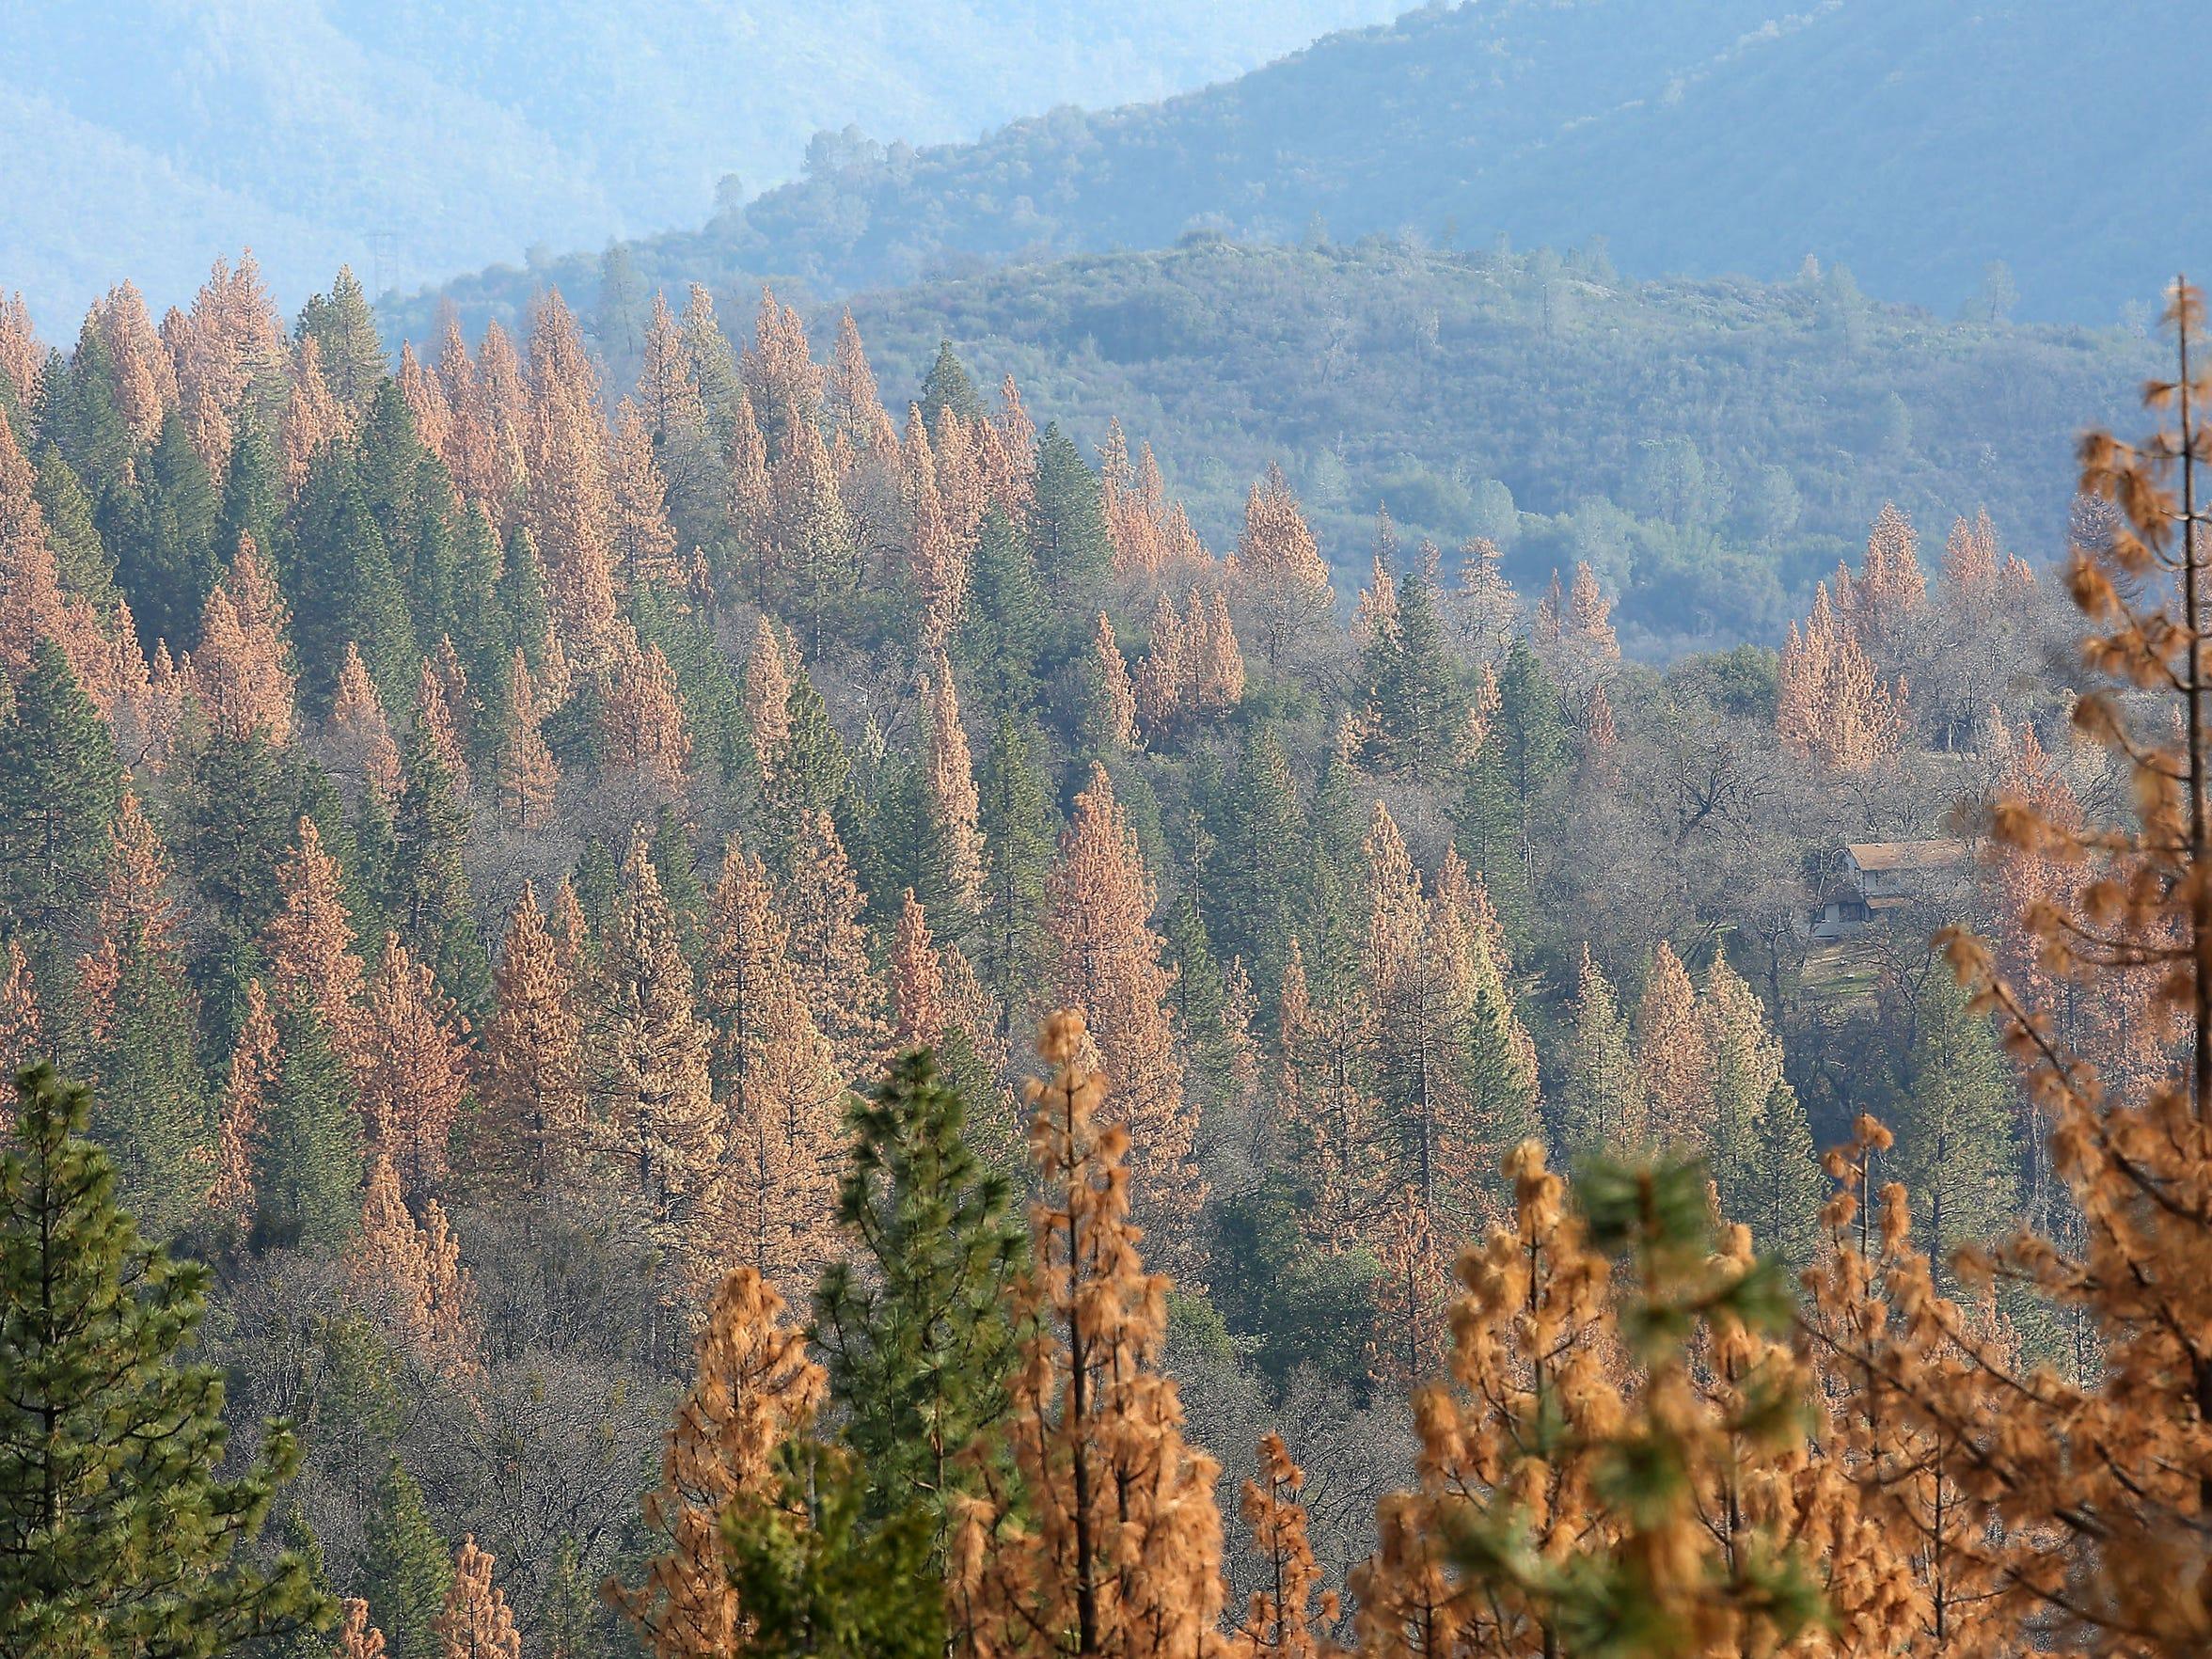 Portions of the Sierra National Forest are filled with dead and dying ponderosa pines. Warm winters and severe drought have enabled bark beetles to flourish in forests across California, leaving vast areas in the mountains covered with orangish-brown dead trees.